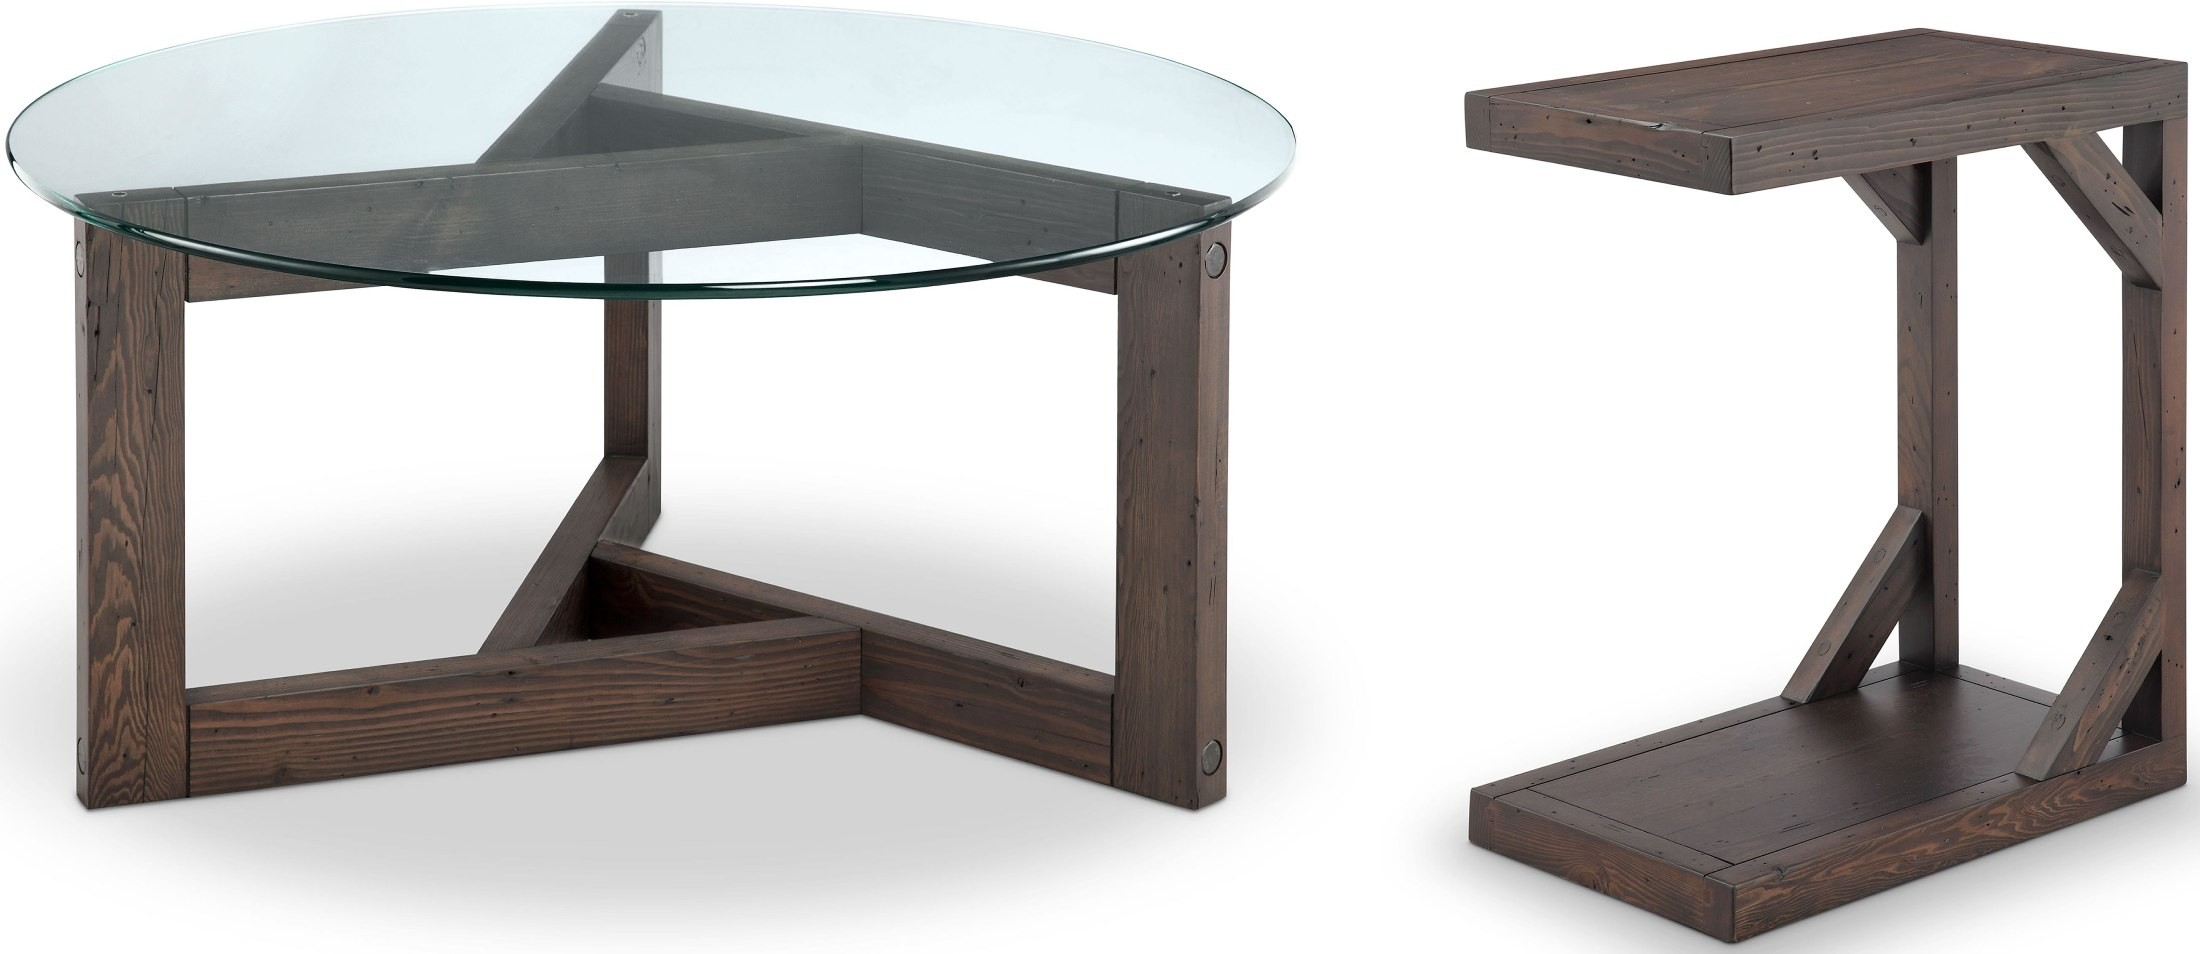 Beck Dark Chocolate Glass Demilune Sofa Table from Magnussen Home